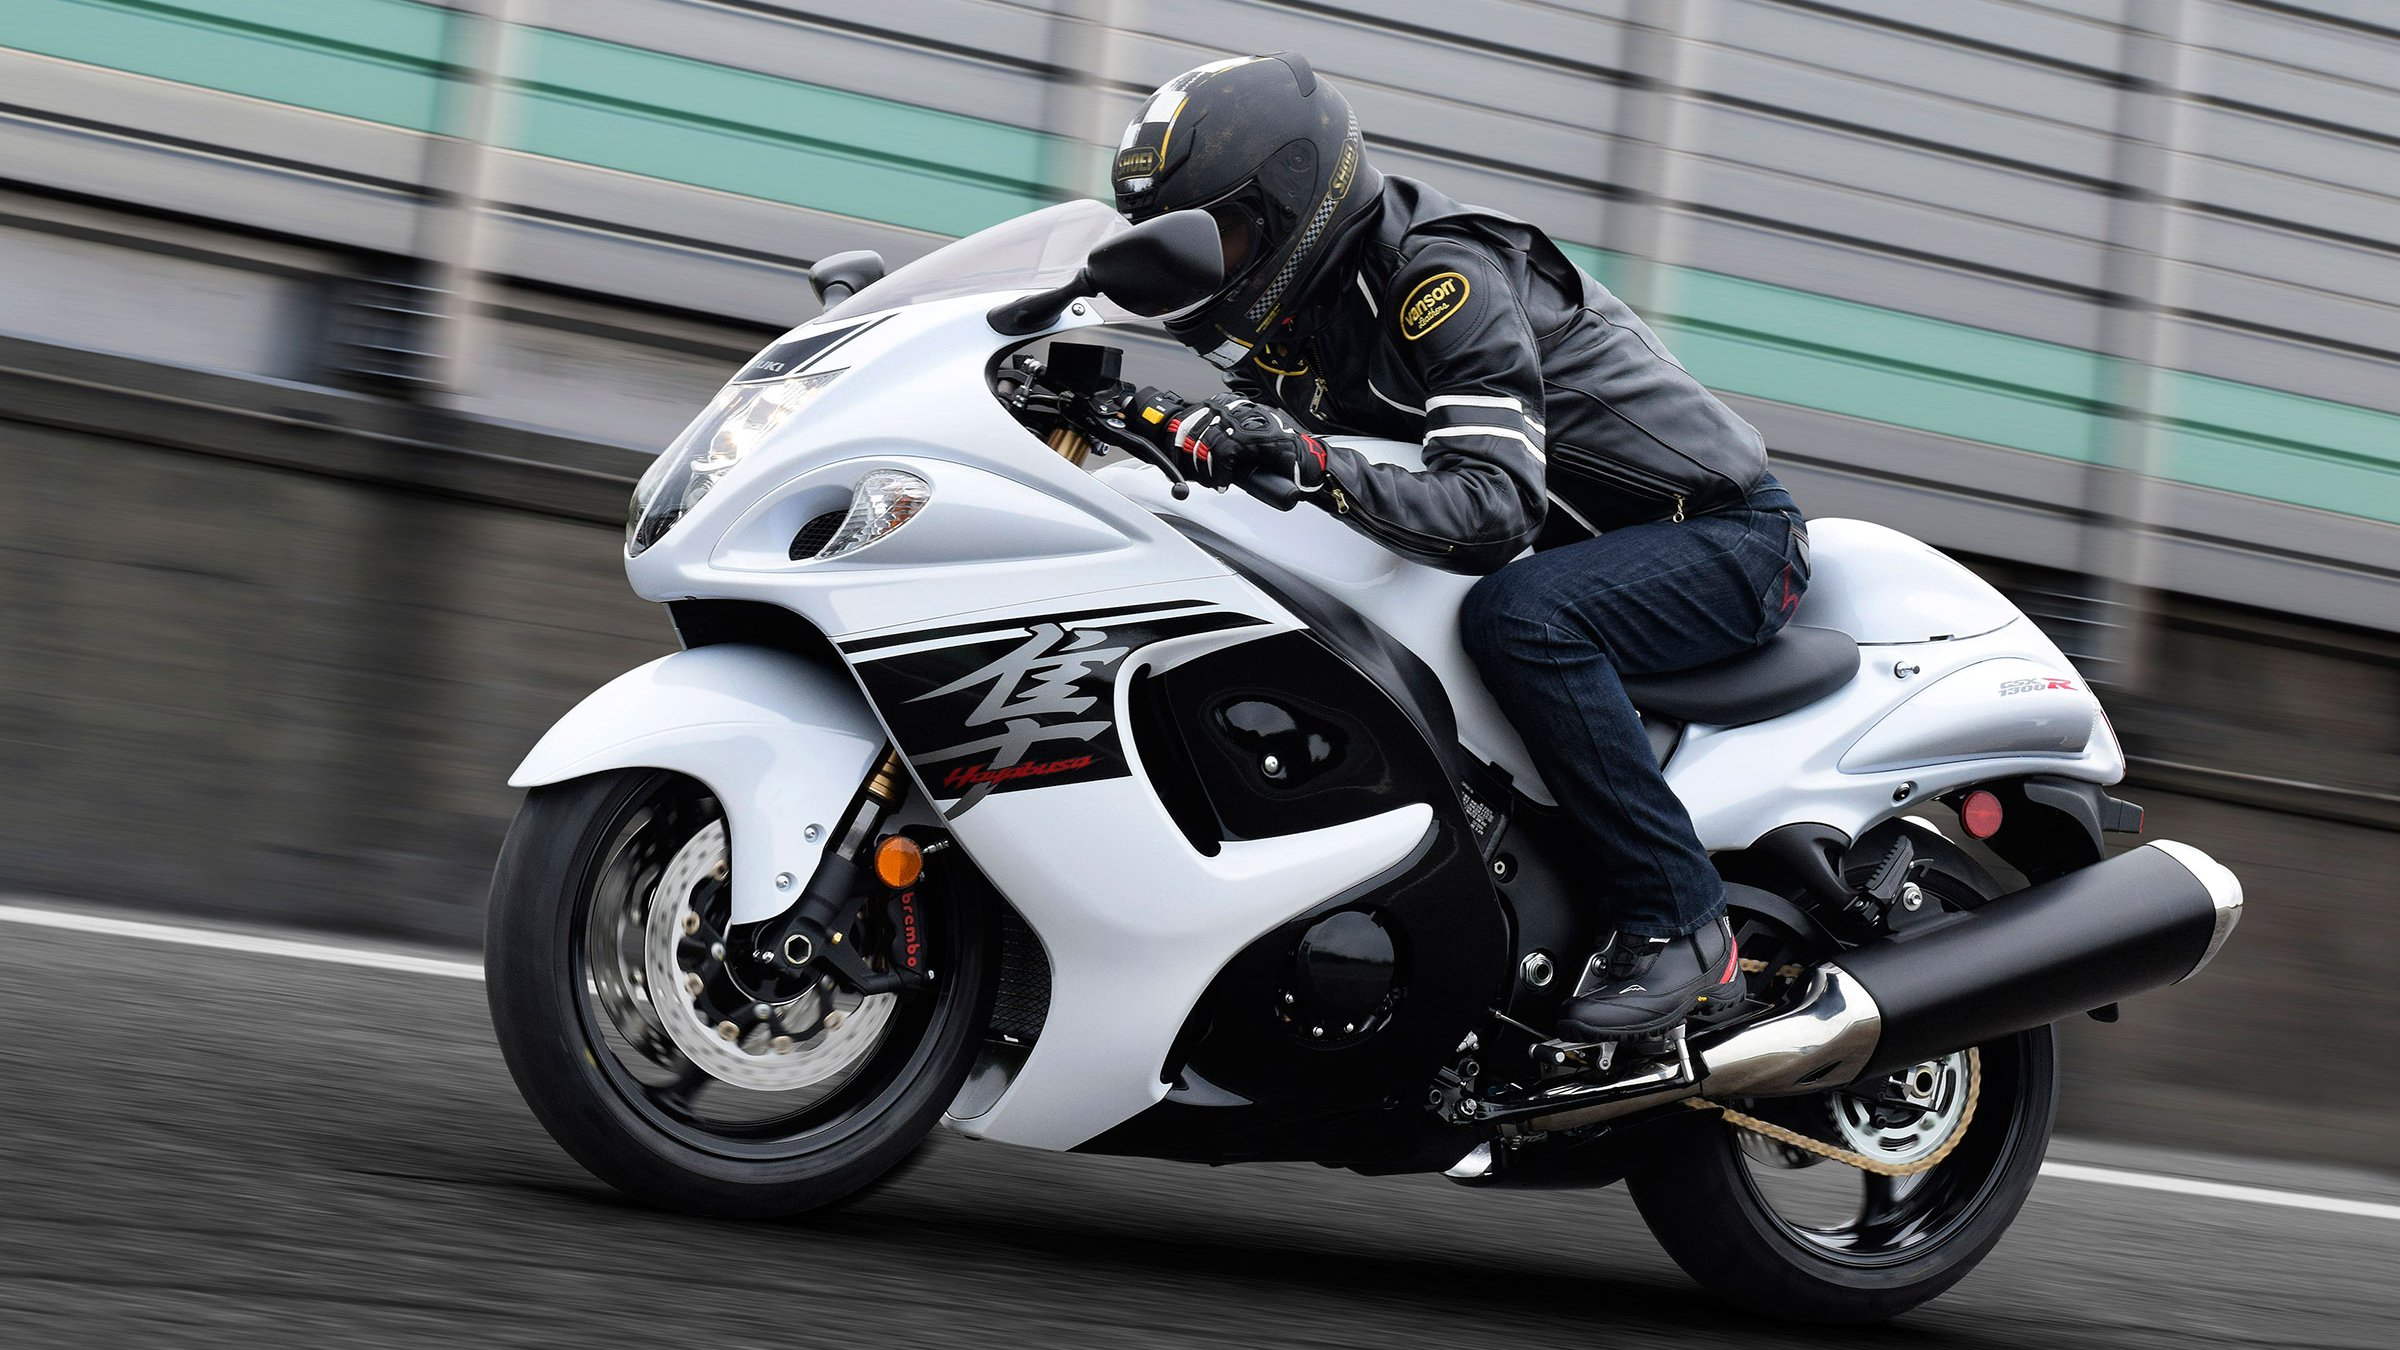 Could This Be The Exhaust Of A New Suzuki Hayabusa